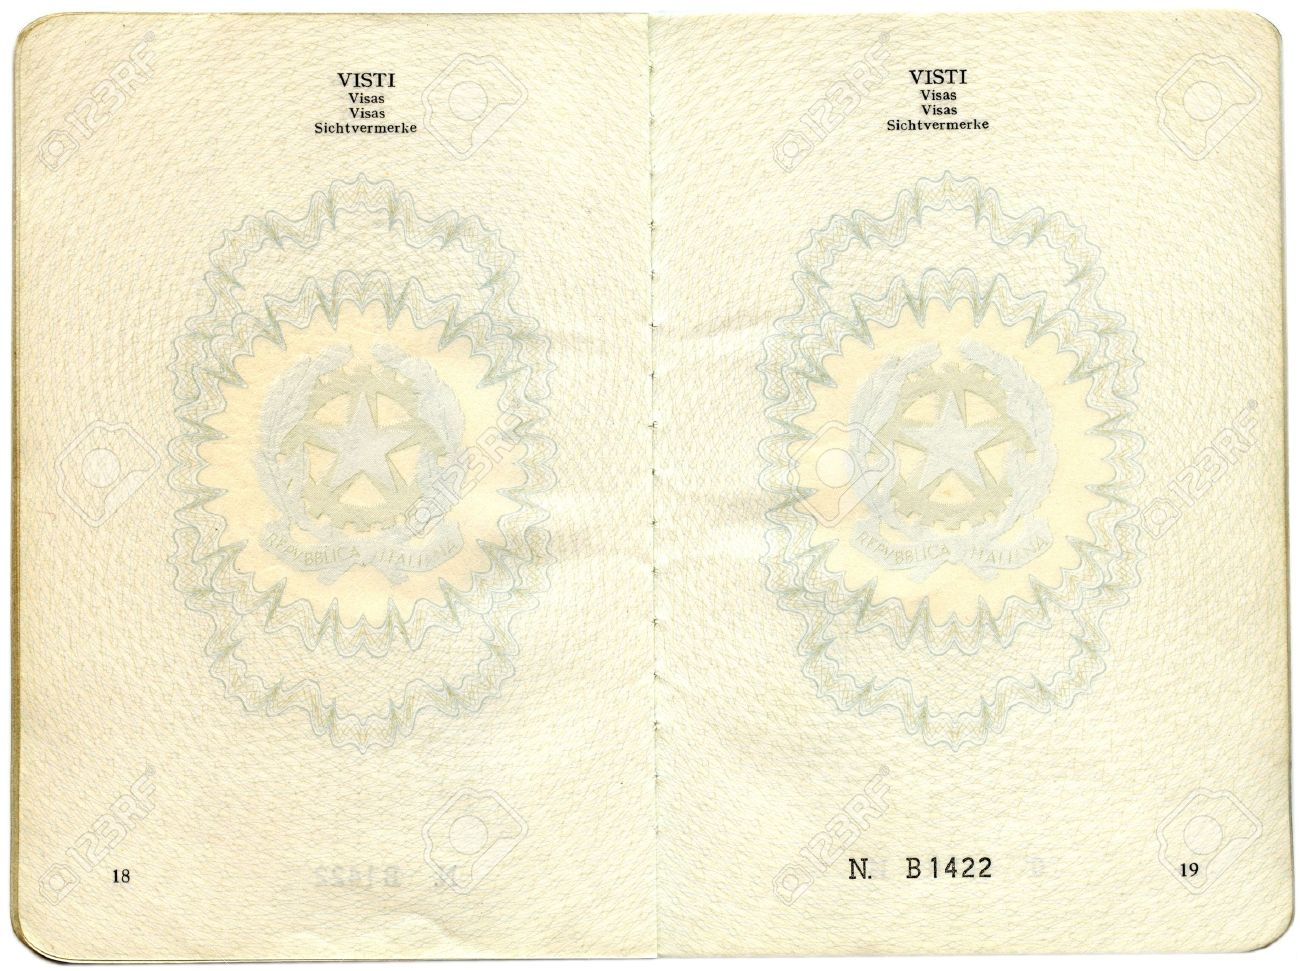 Old Italian passport. Pages for visa marks - 9279532